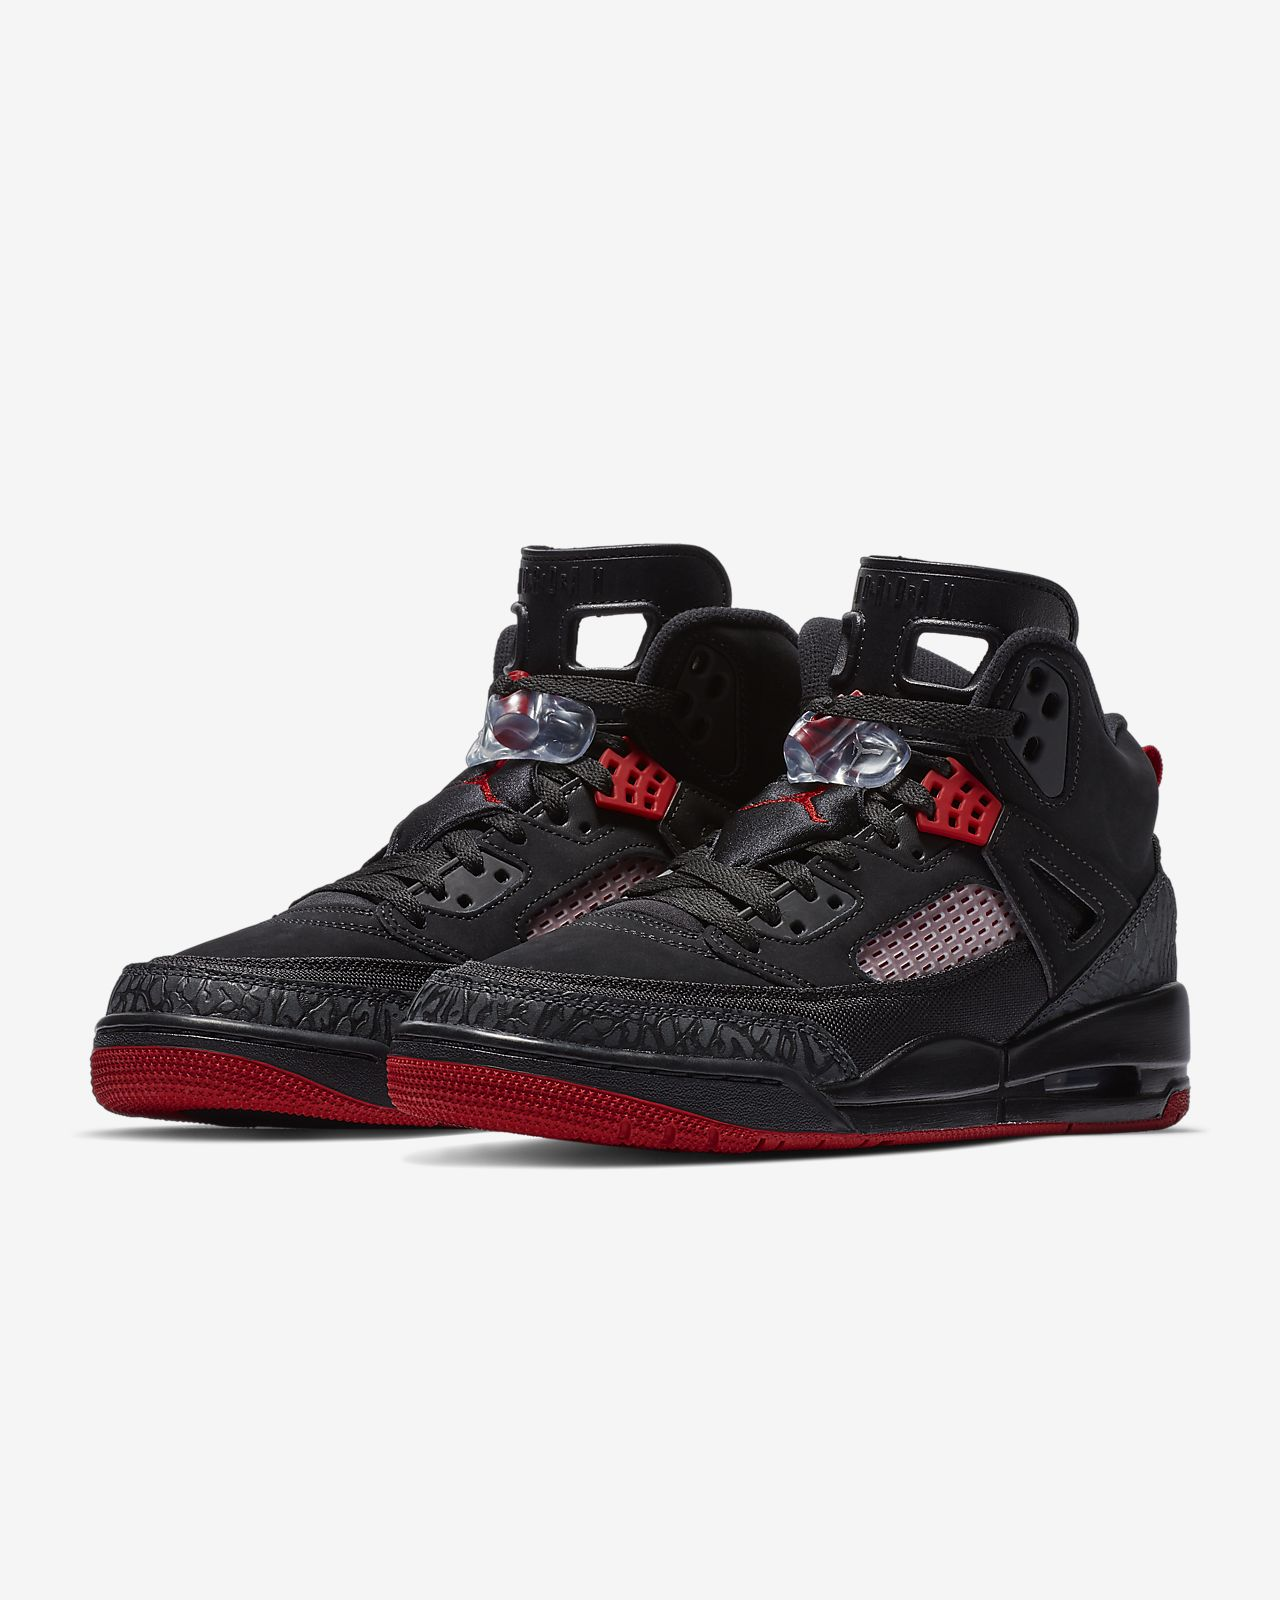 6471b34cff93 Low Resolution Jordan Spizike Men s Shoe Jordan Spizike Men s Shoe